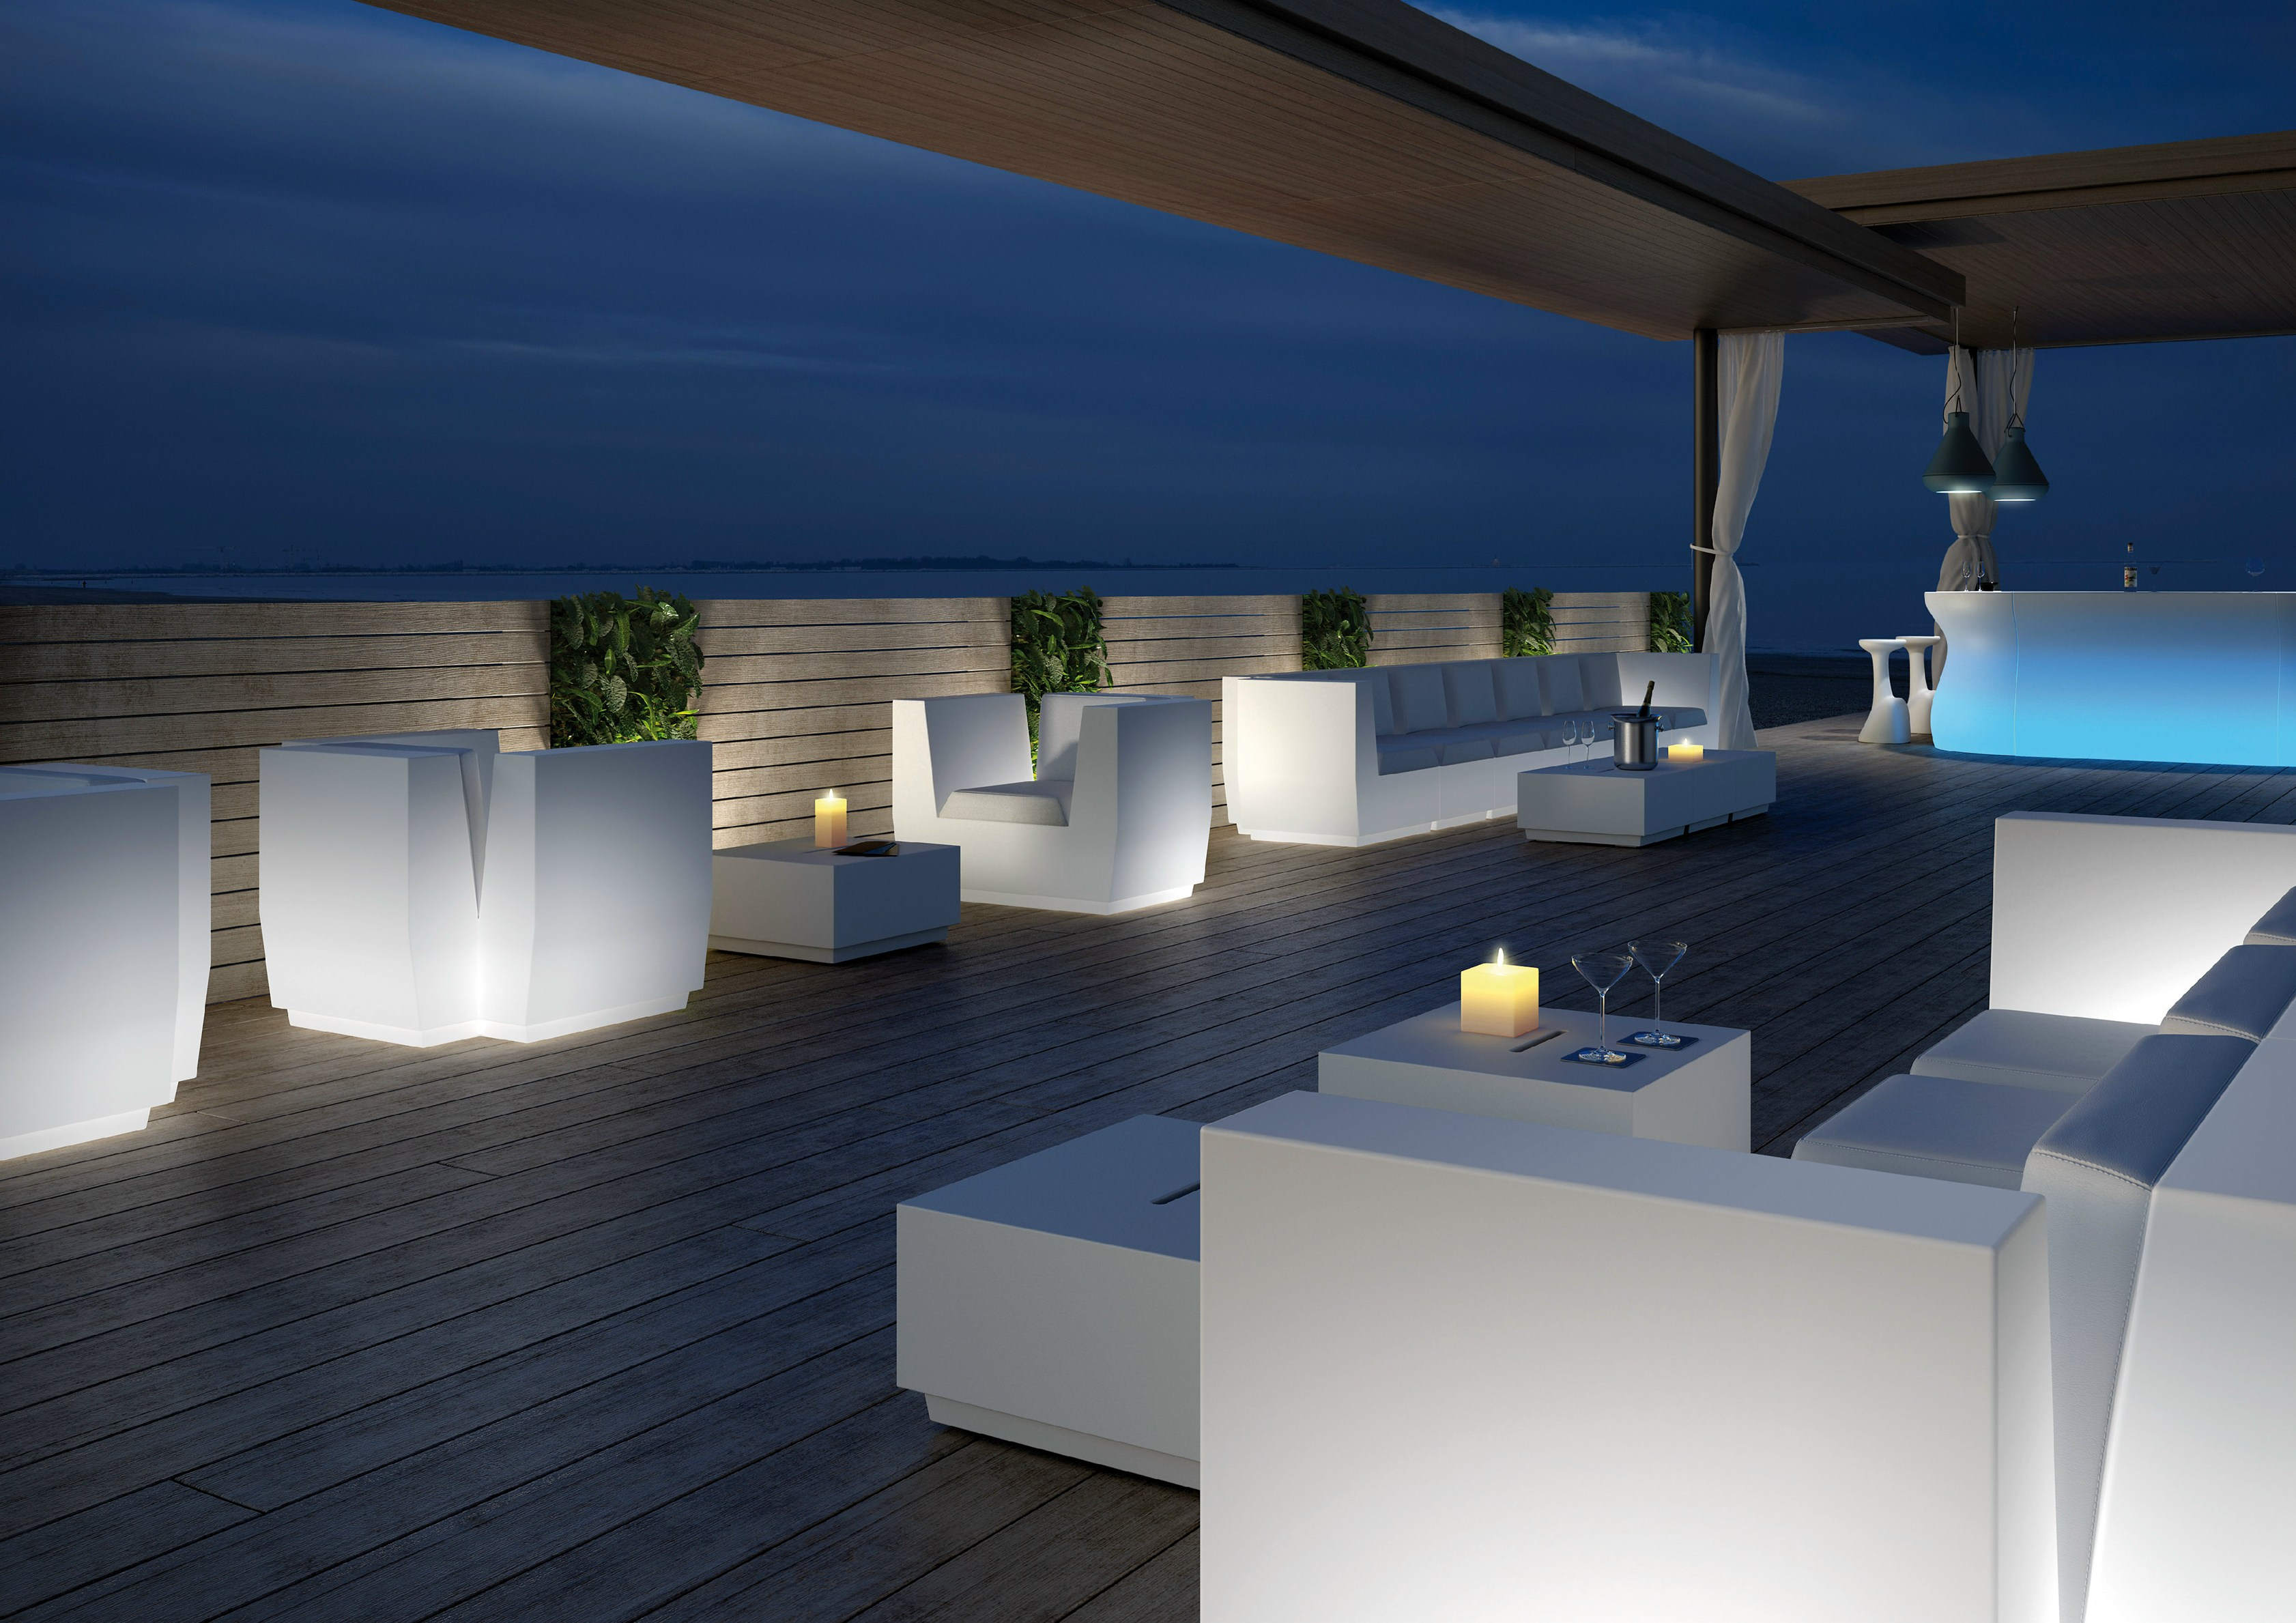 Big cut armchair by plust collection by euro3plast design for Eclairage led exterieur terrasse